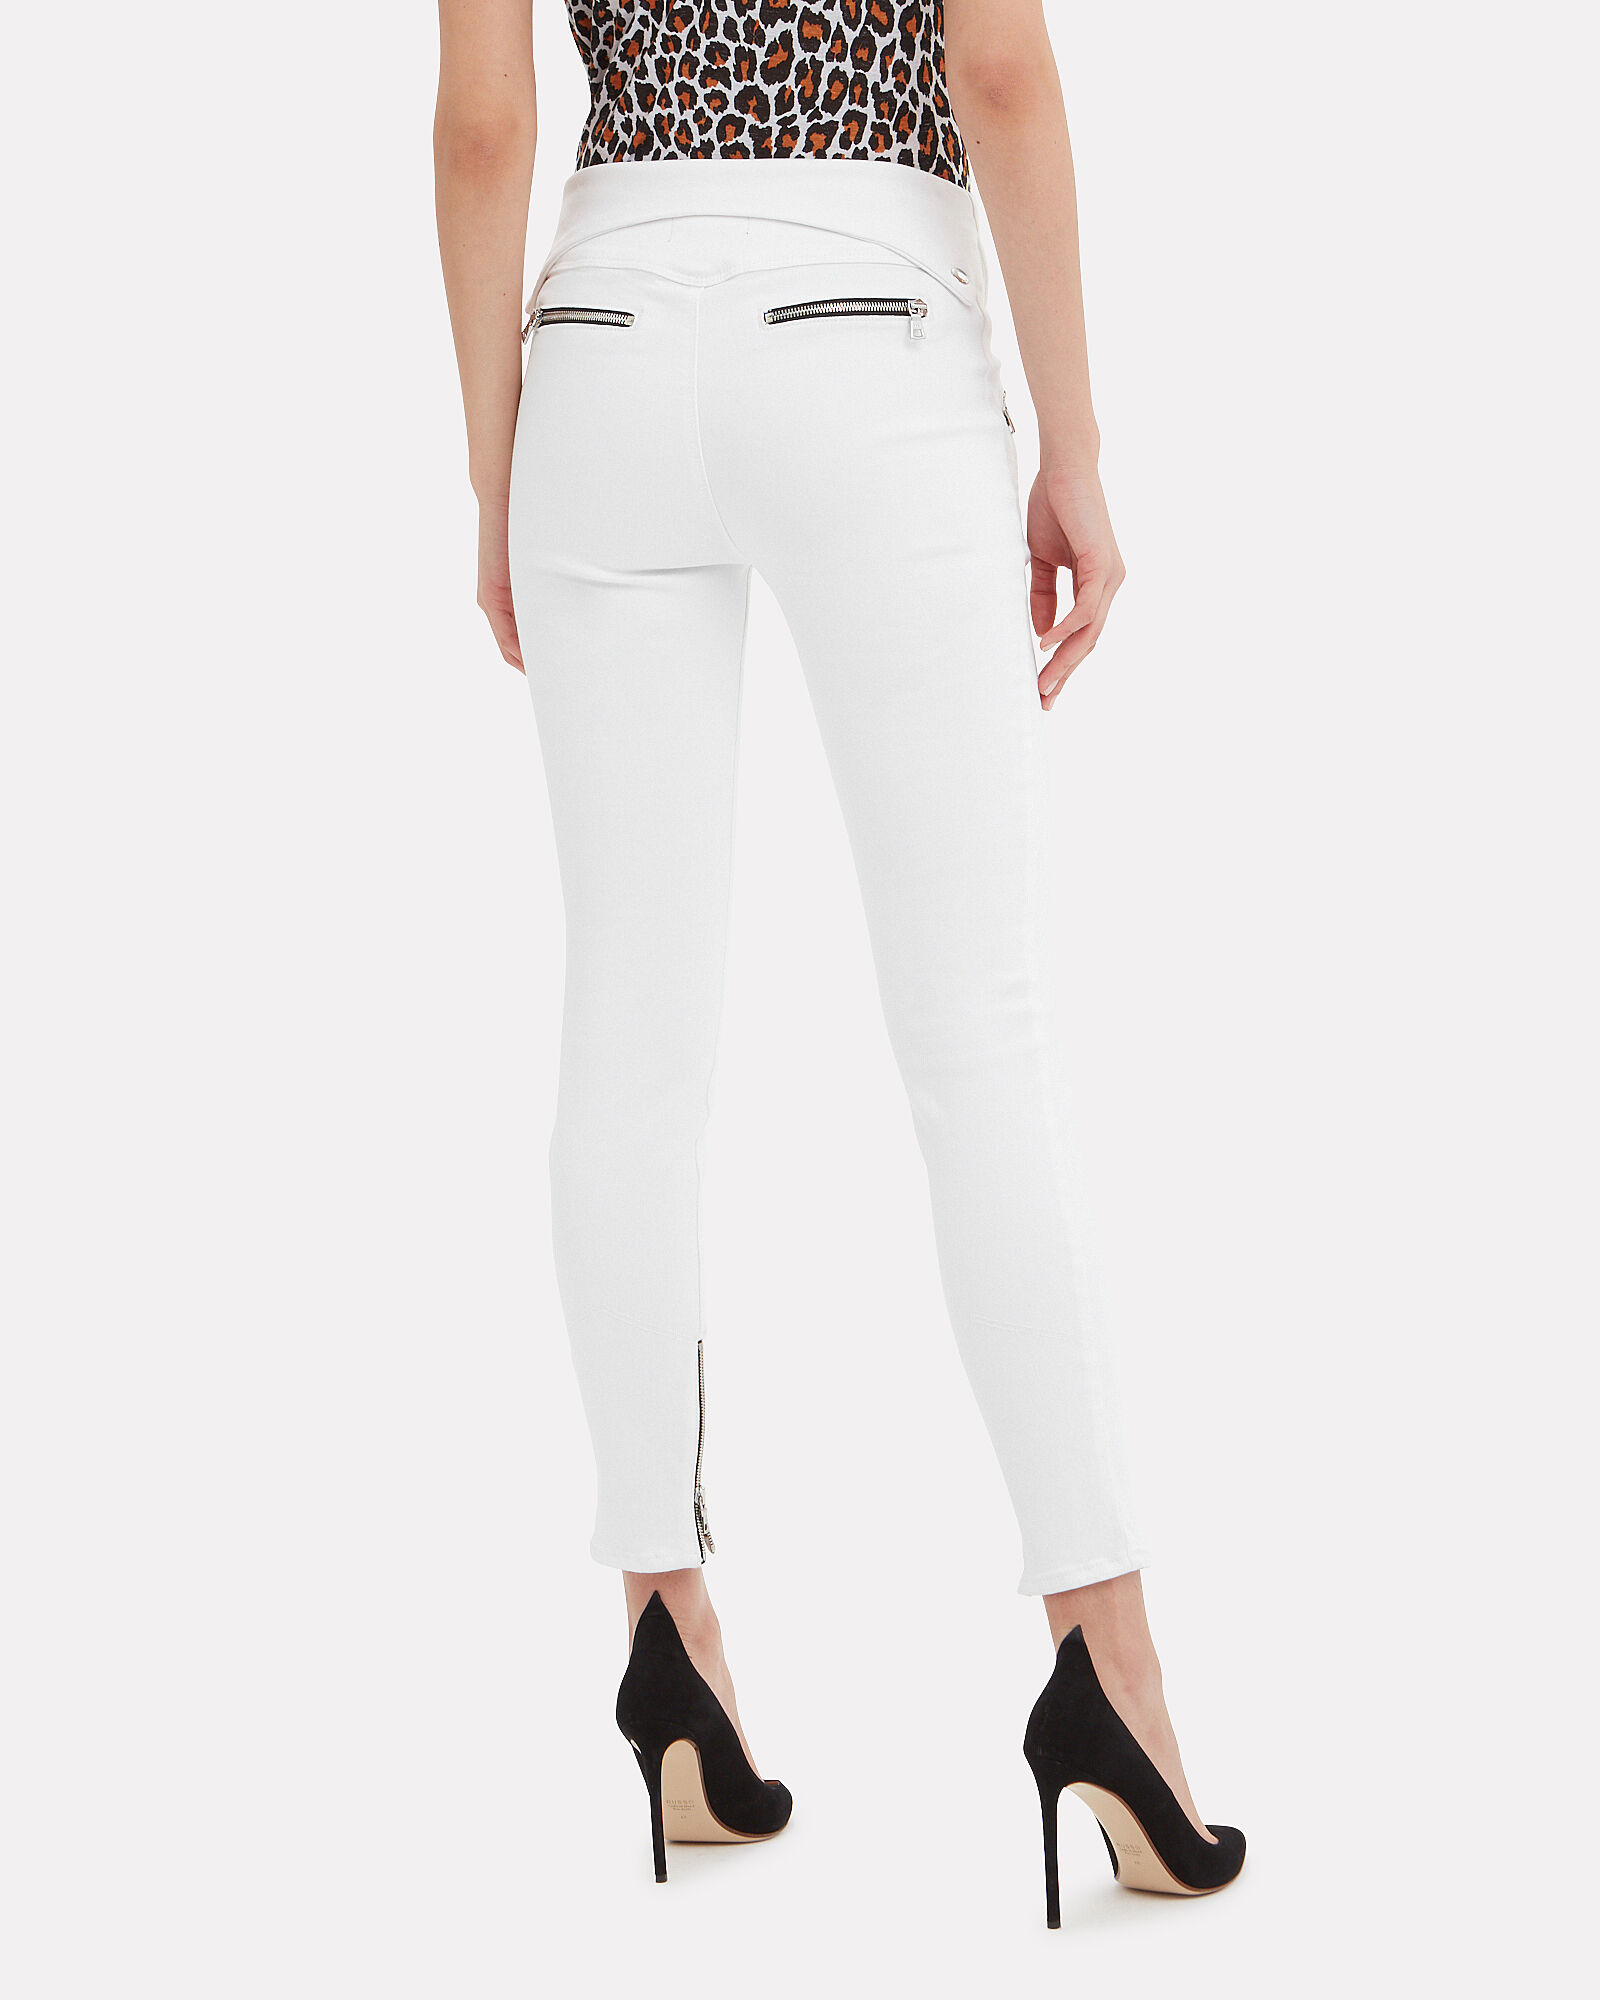 Diavolina Pants, WHITE, hi-res